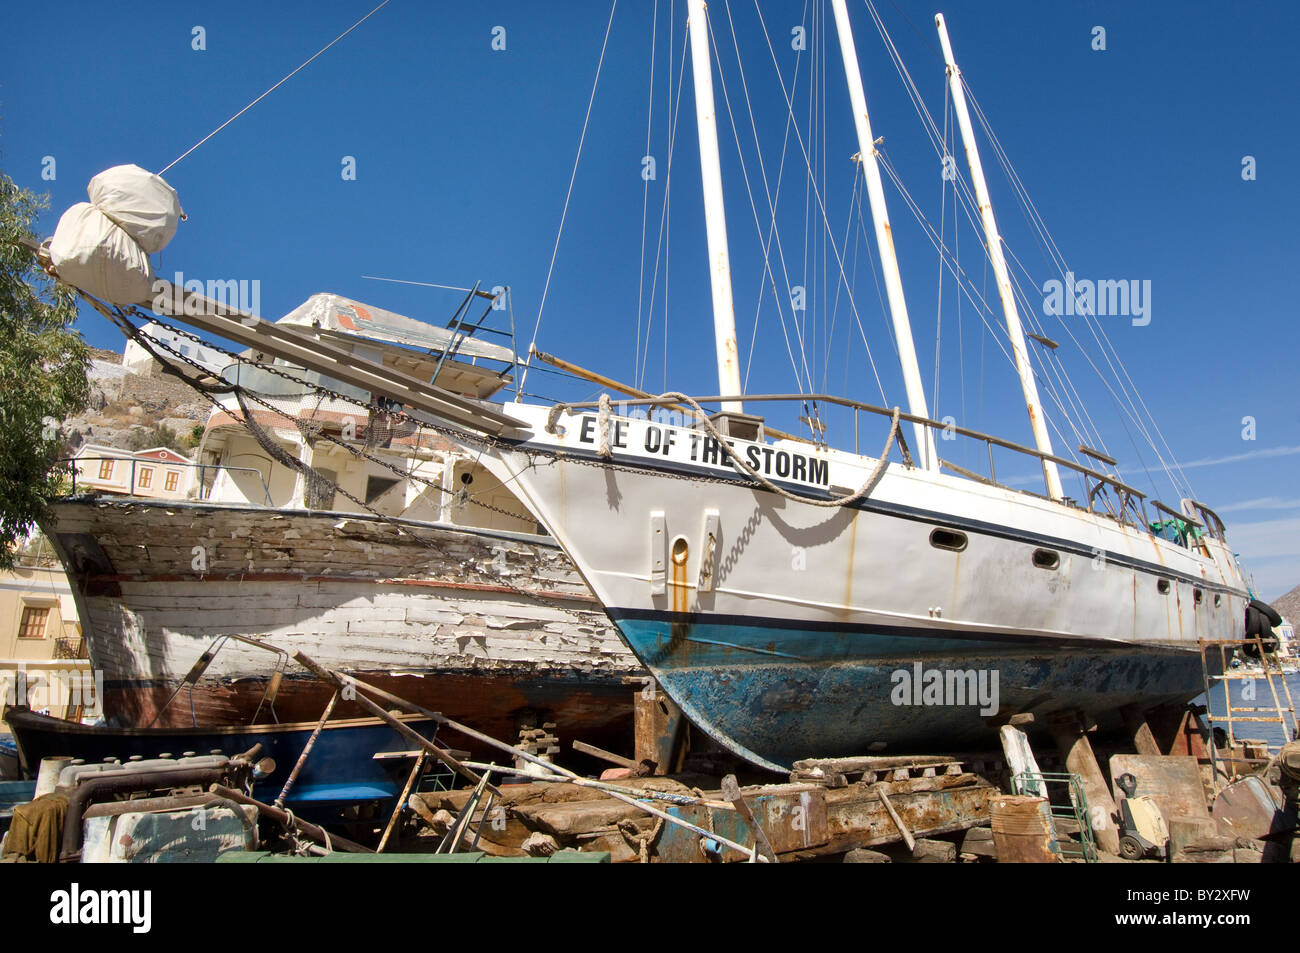 A pair of old Greek pleasure boats 'Eye of the Storm' and 'Lazy Days' in a boatyard on the Greek - Stock Image